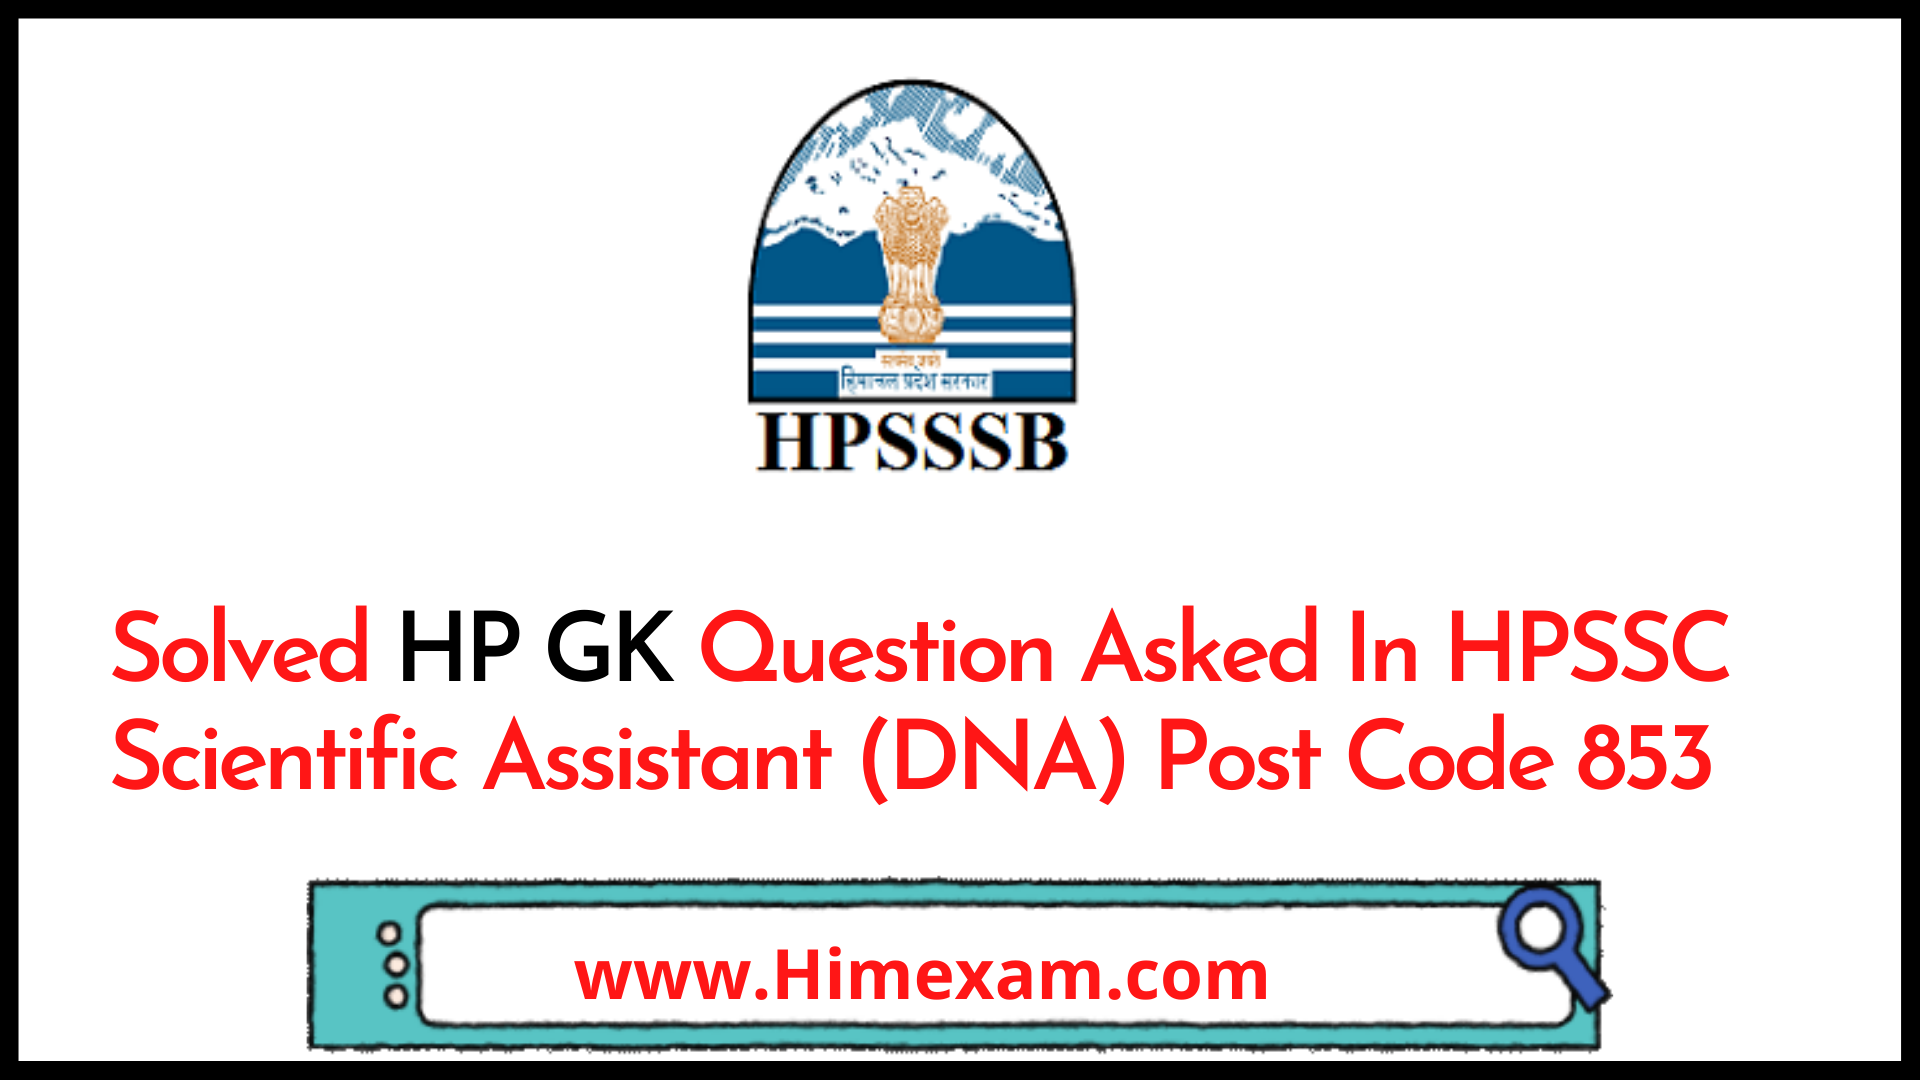 Solved HP GK Question Asked In HPSSC Scientific Assistant (DNA) Post Code 853